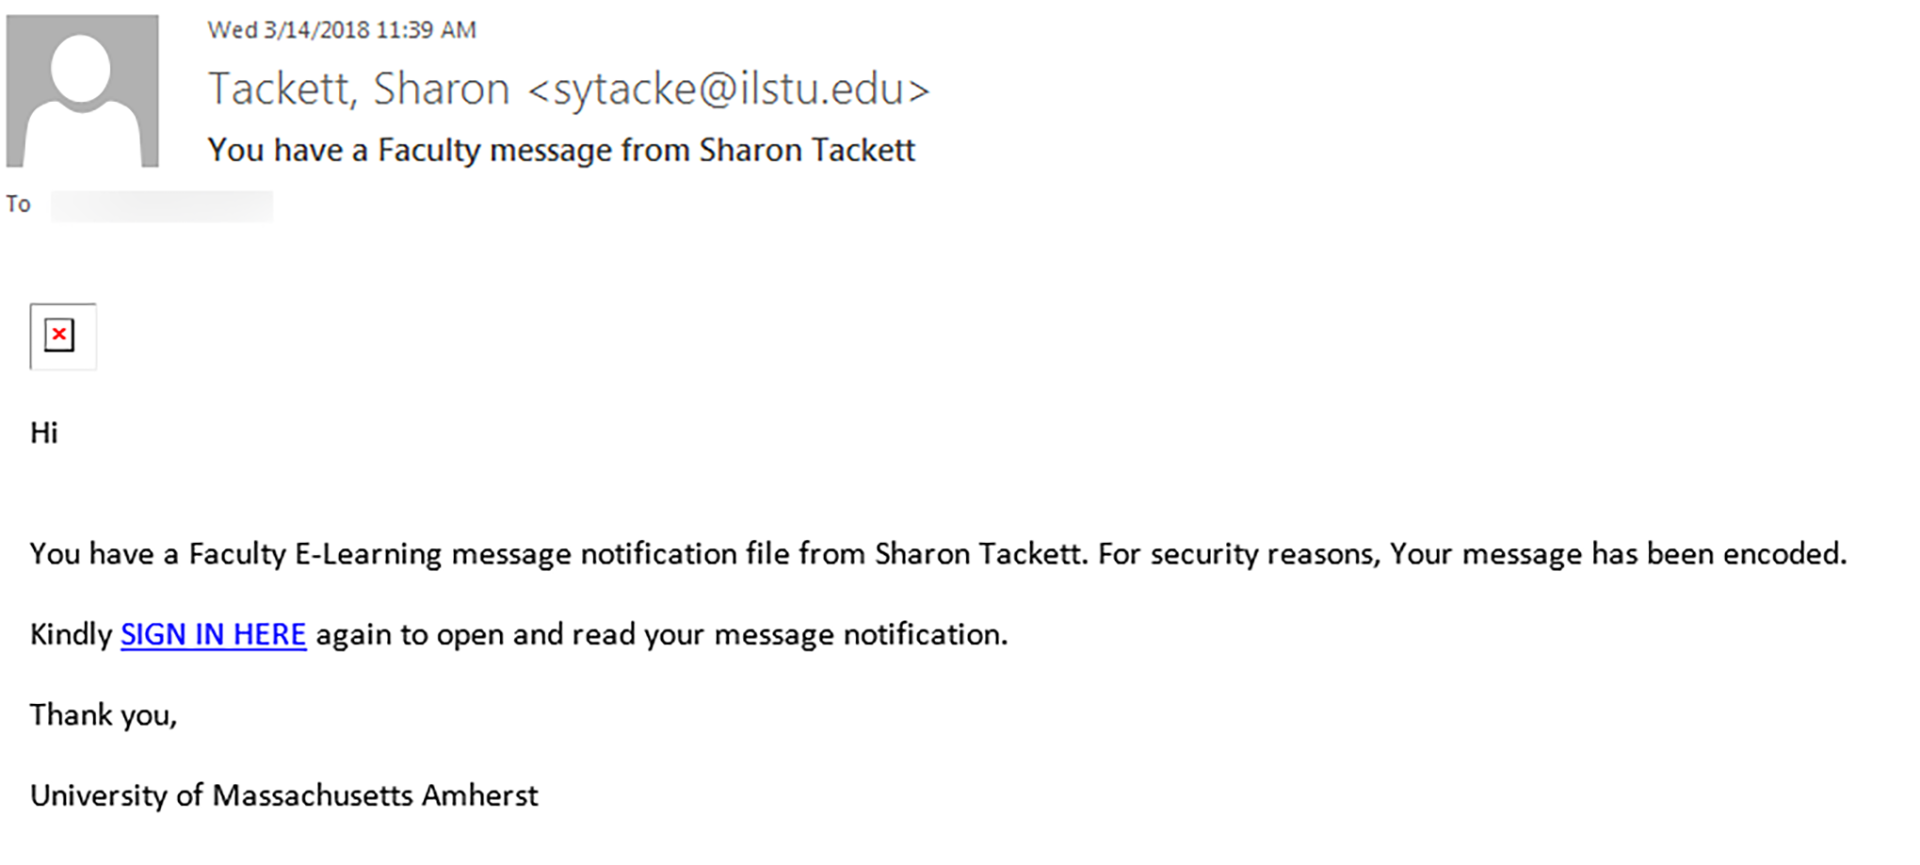 Phishing example that appears to have been sent by 'Sharon Tackett'